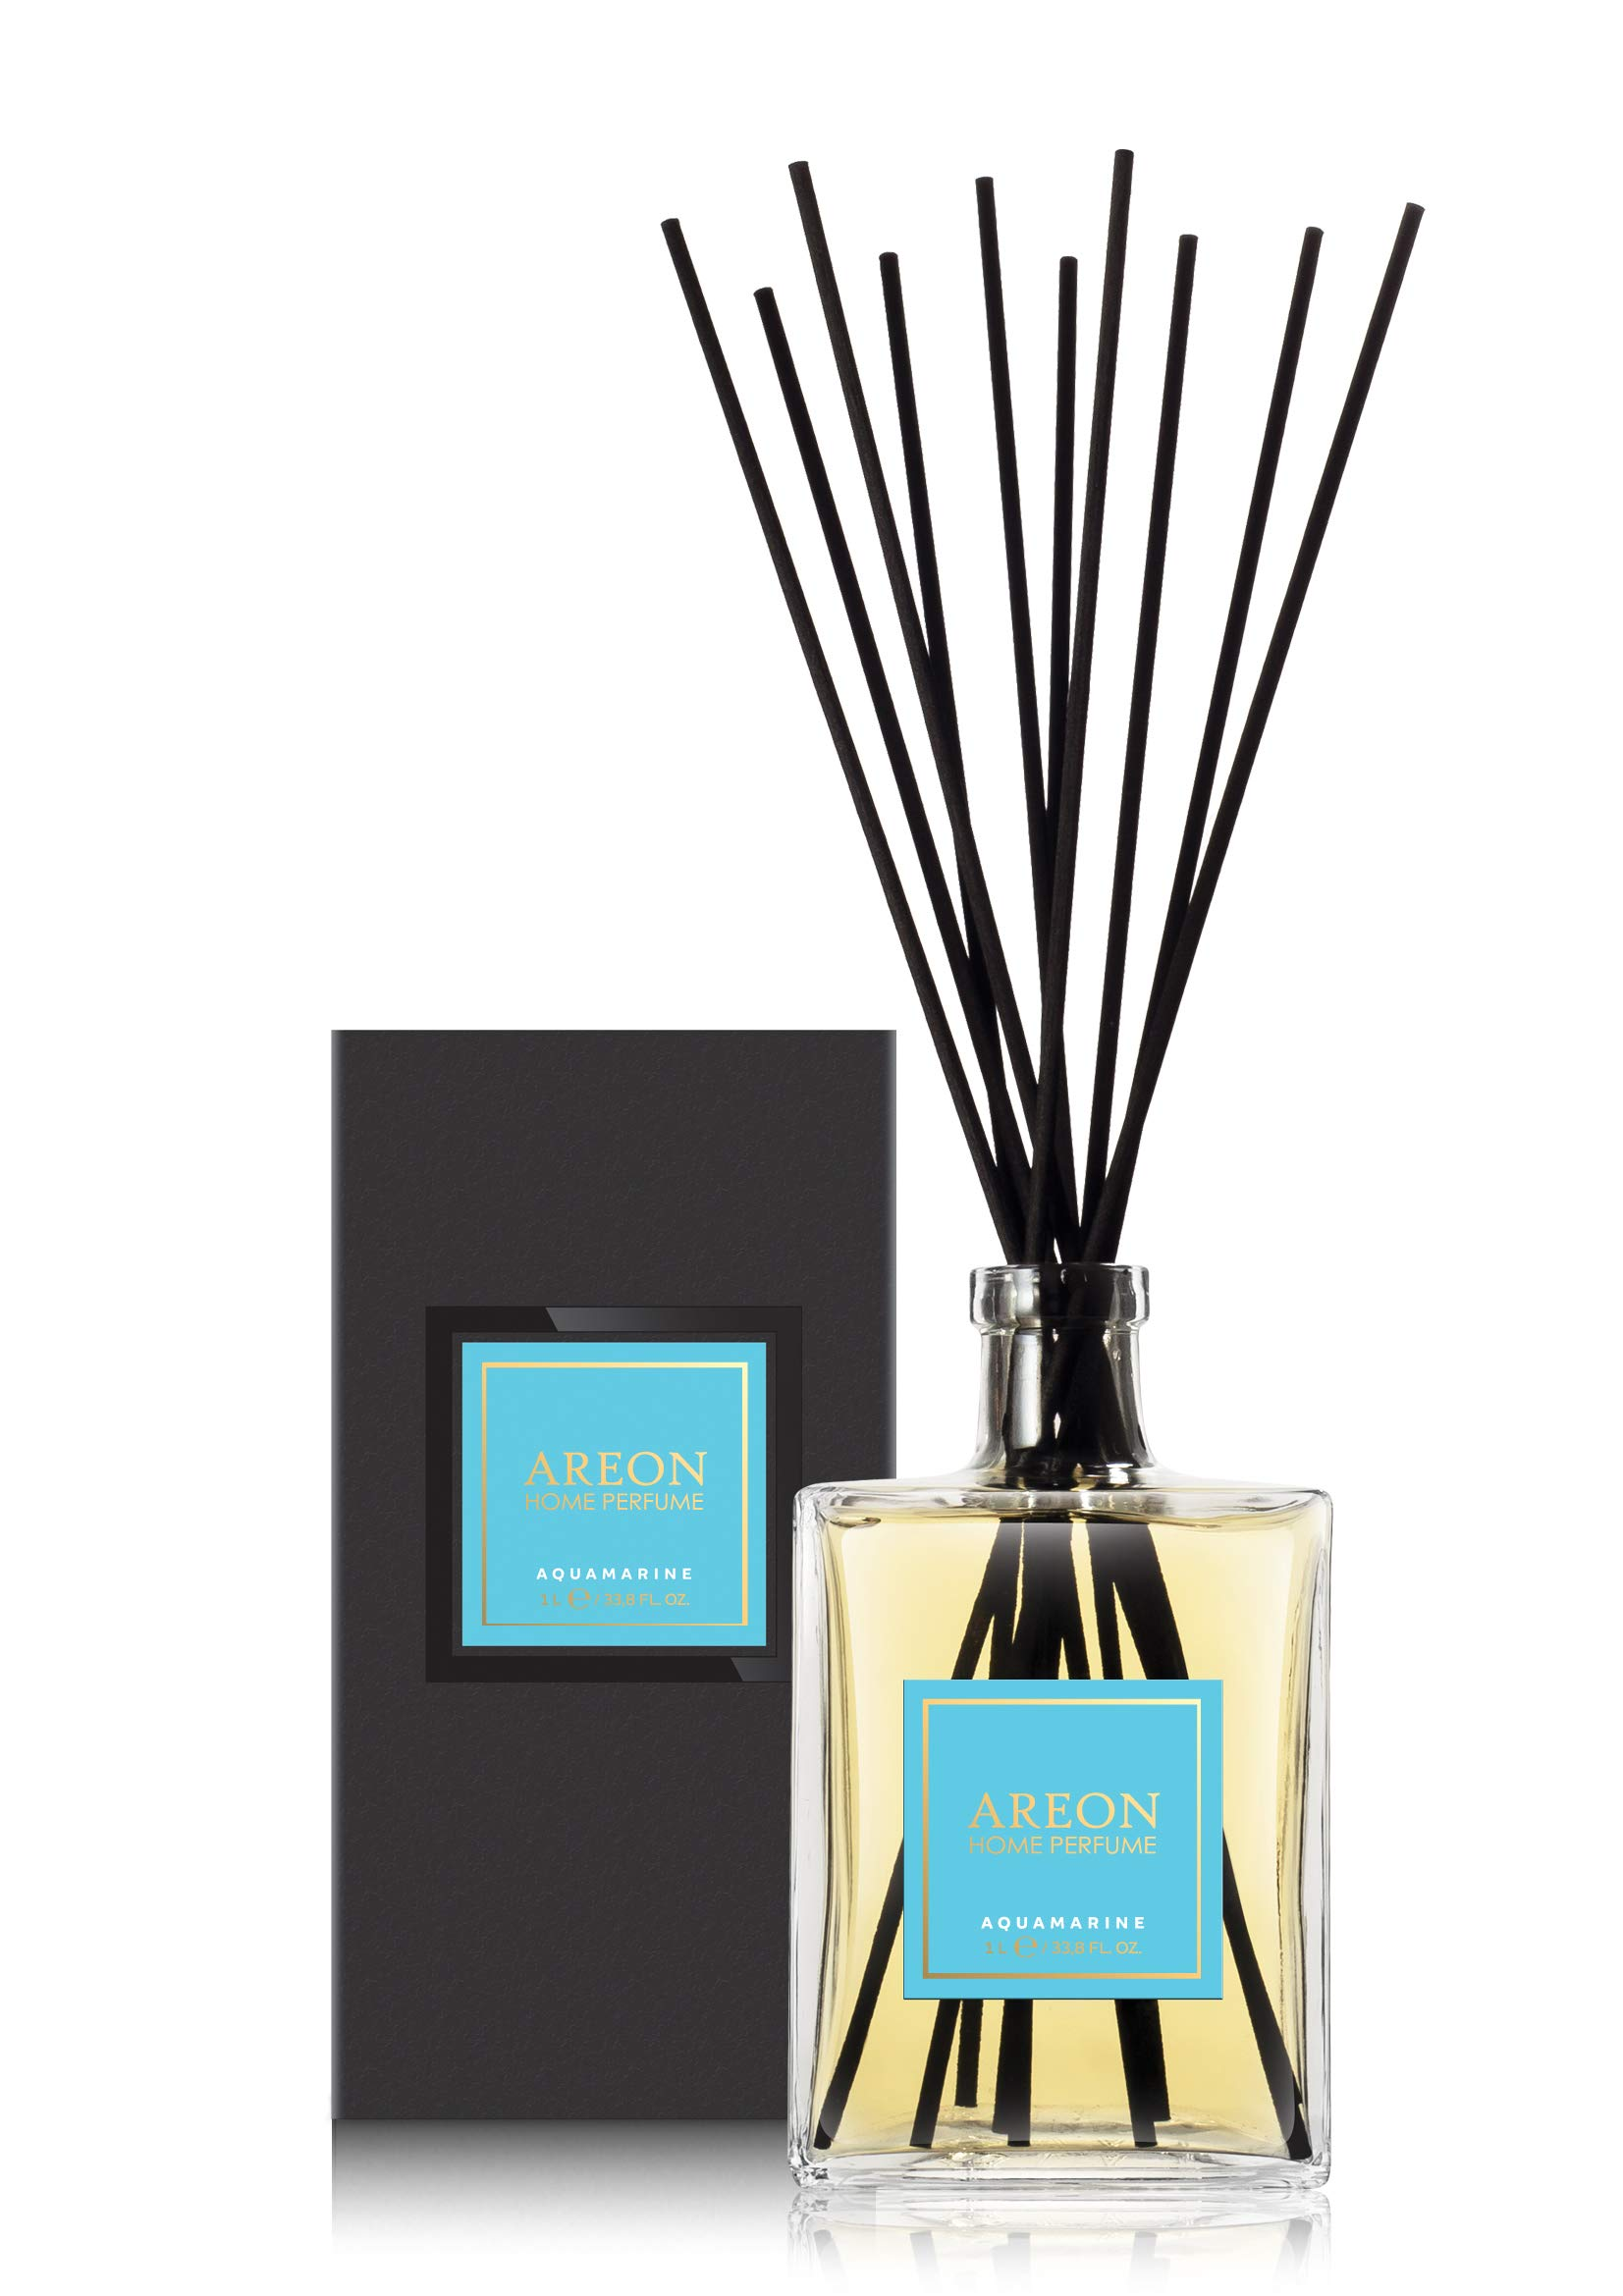 Areon Home Perfume Sticks - 1 Liter (34 OZ) Aquamarine by Areon (Image #1)